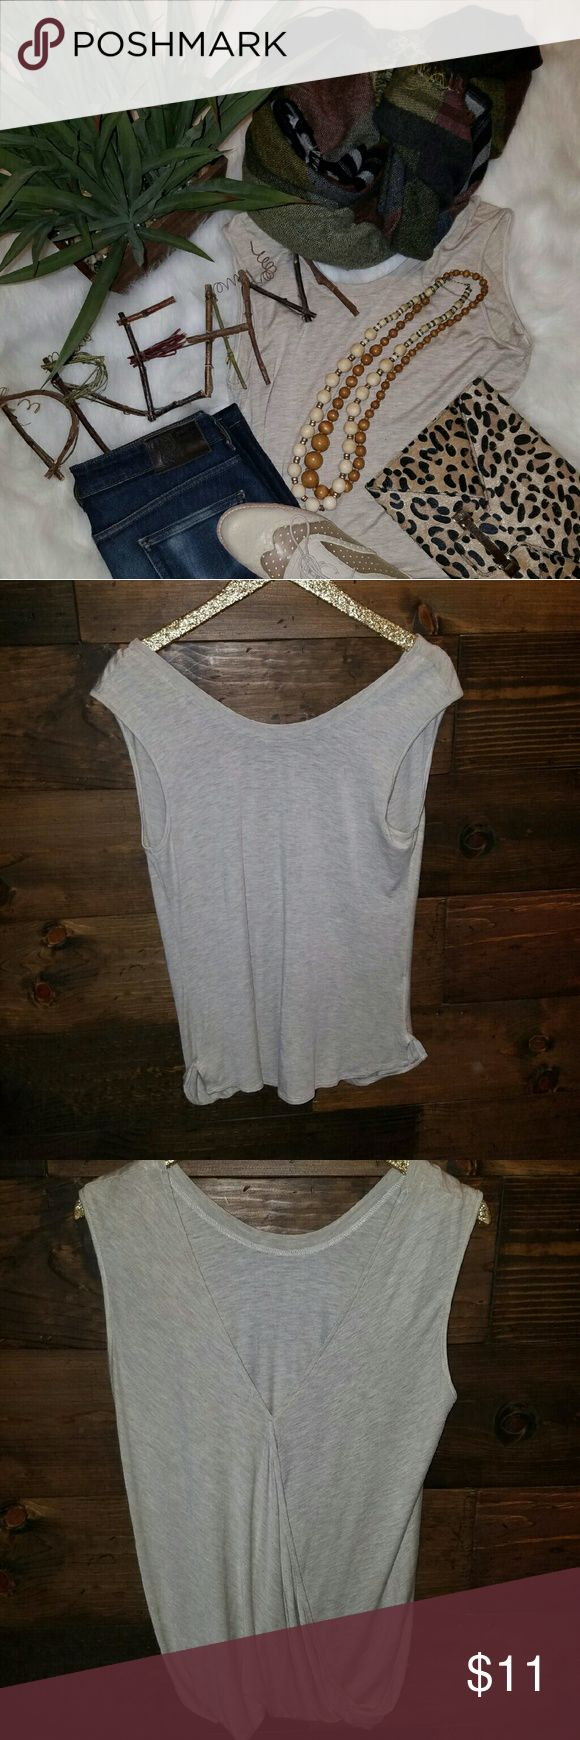 (Kim & Cami) Neutral beige tank Never worn, like new tank size medium. This tank is a great layering piece, and looks great alone with the gathered v neck back. Kim & Cami Tops Tank Tops